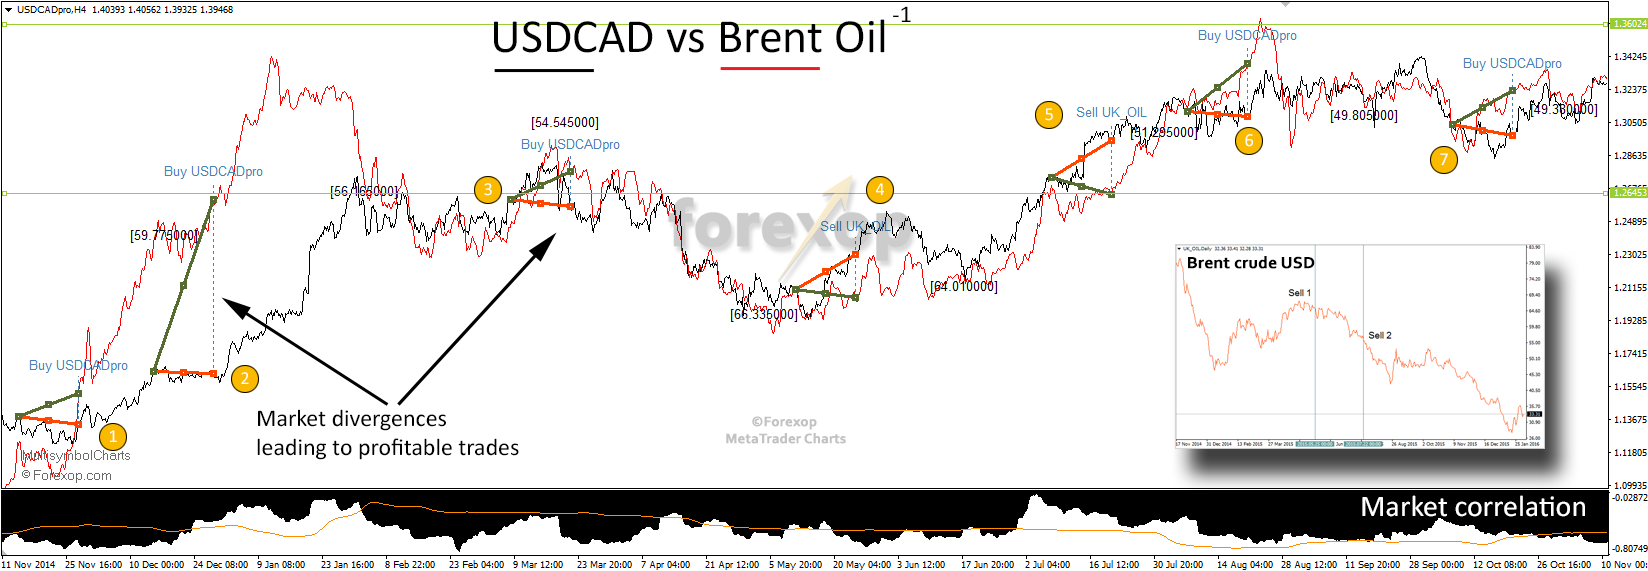 Figure 7: USDCAD combined with Brent crude oil (inverted)